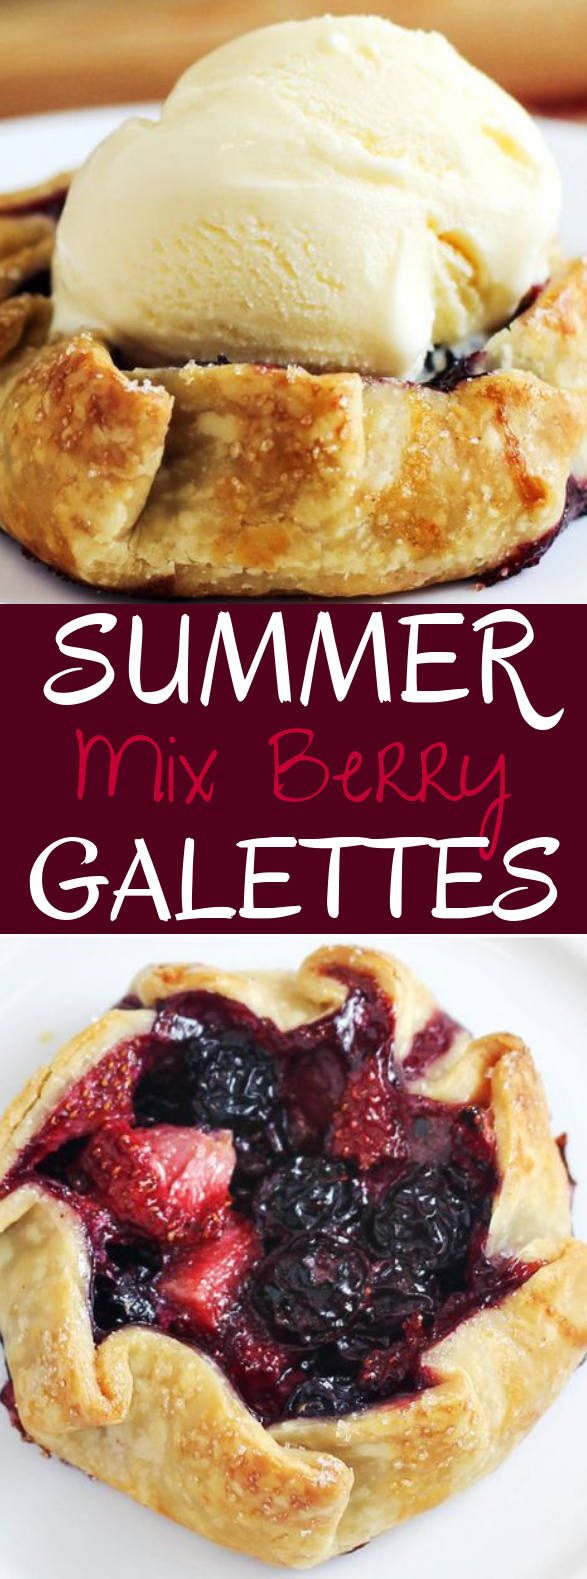 Mini Summer Berry Galettes #desserts #pastry